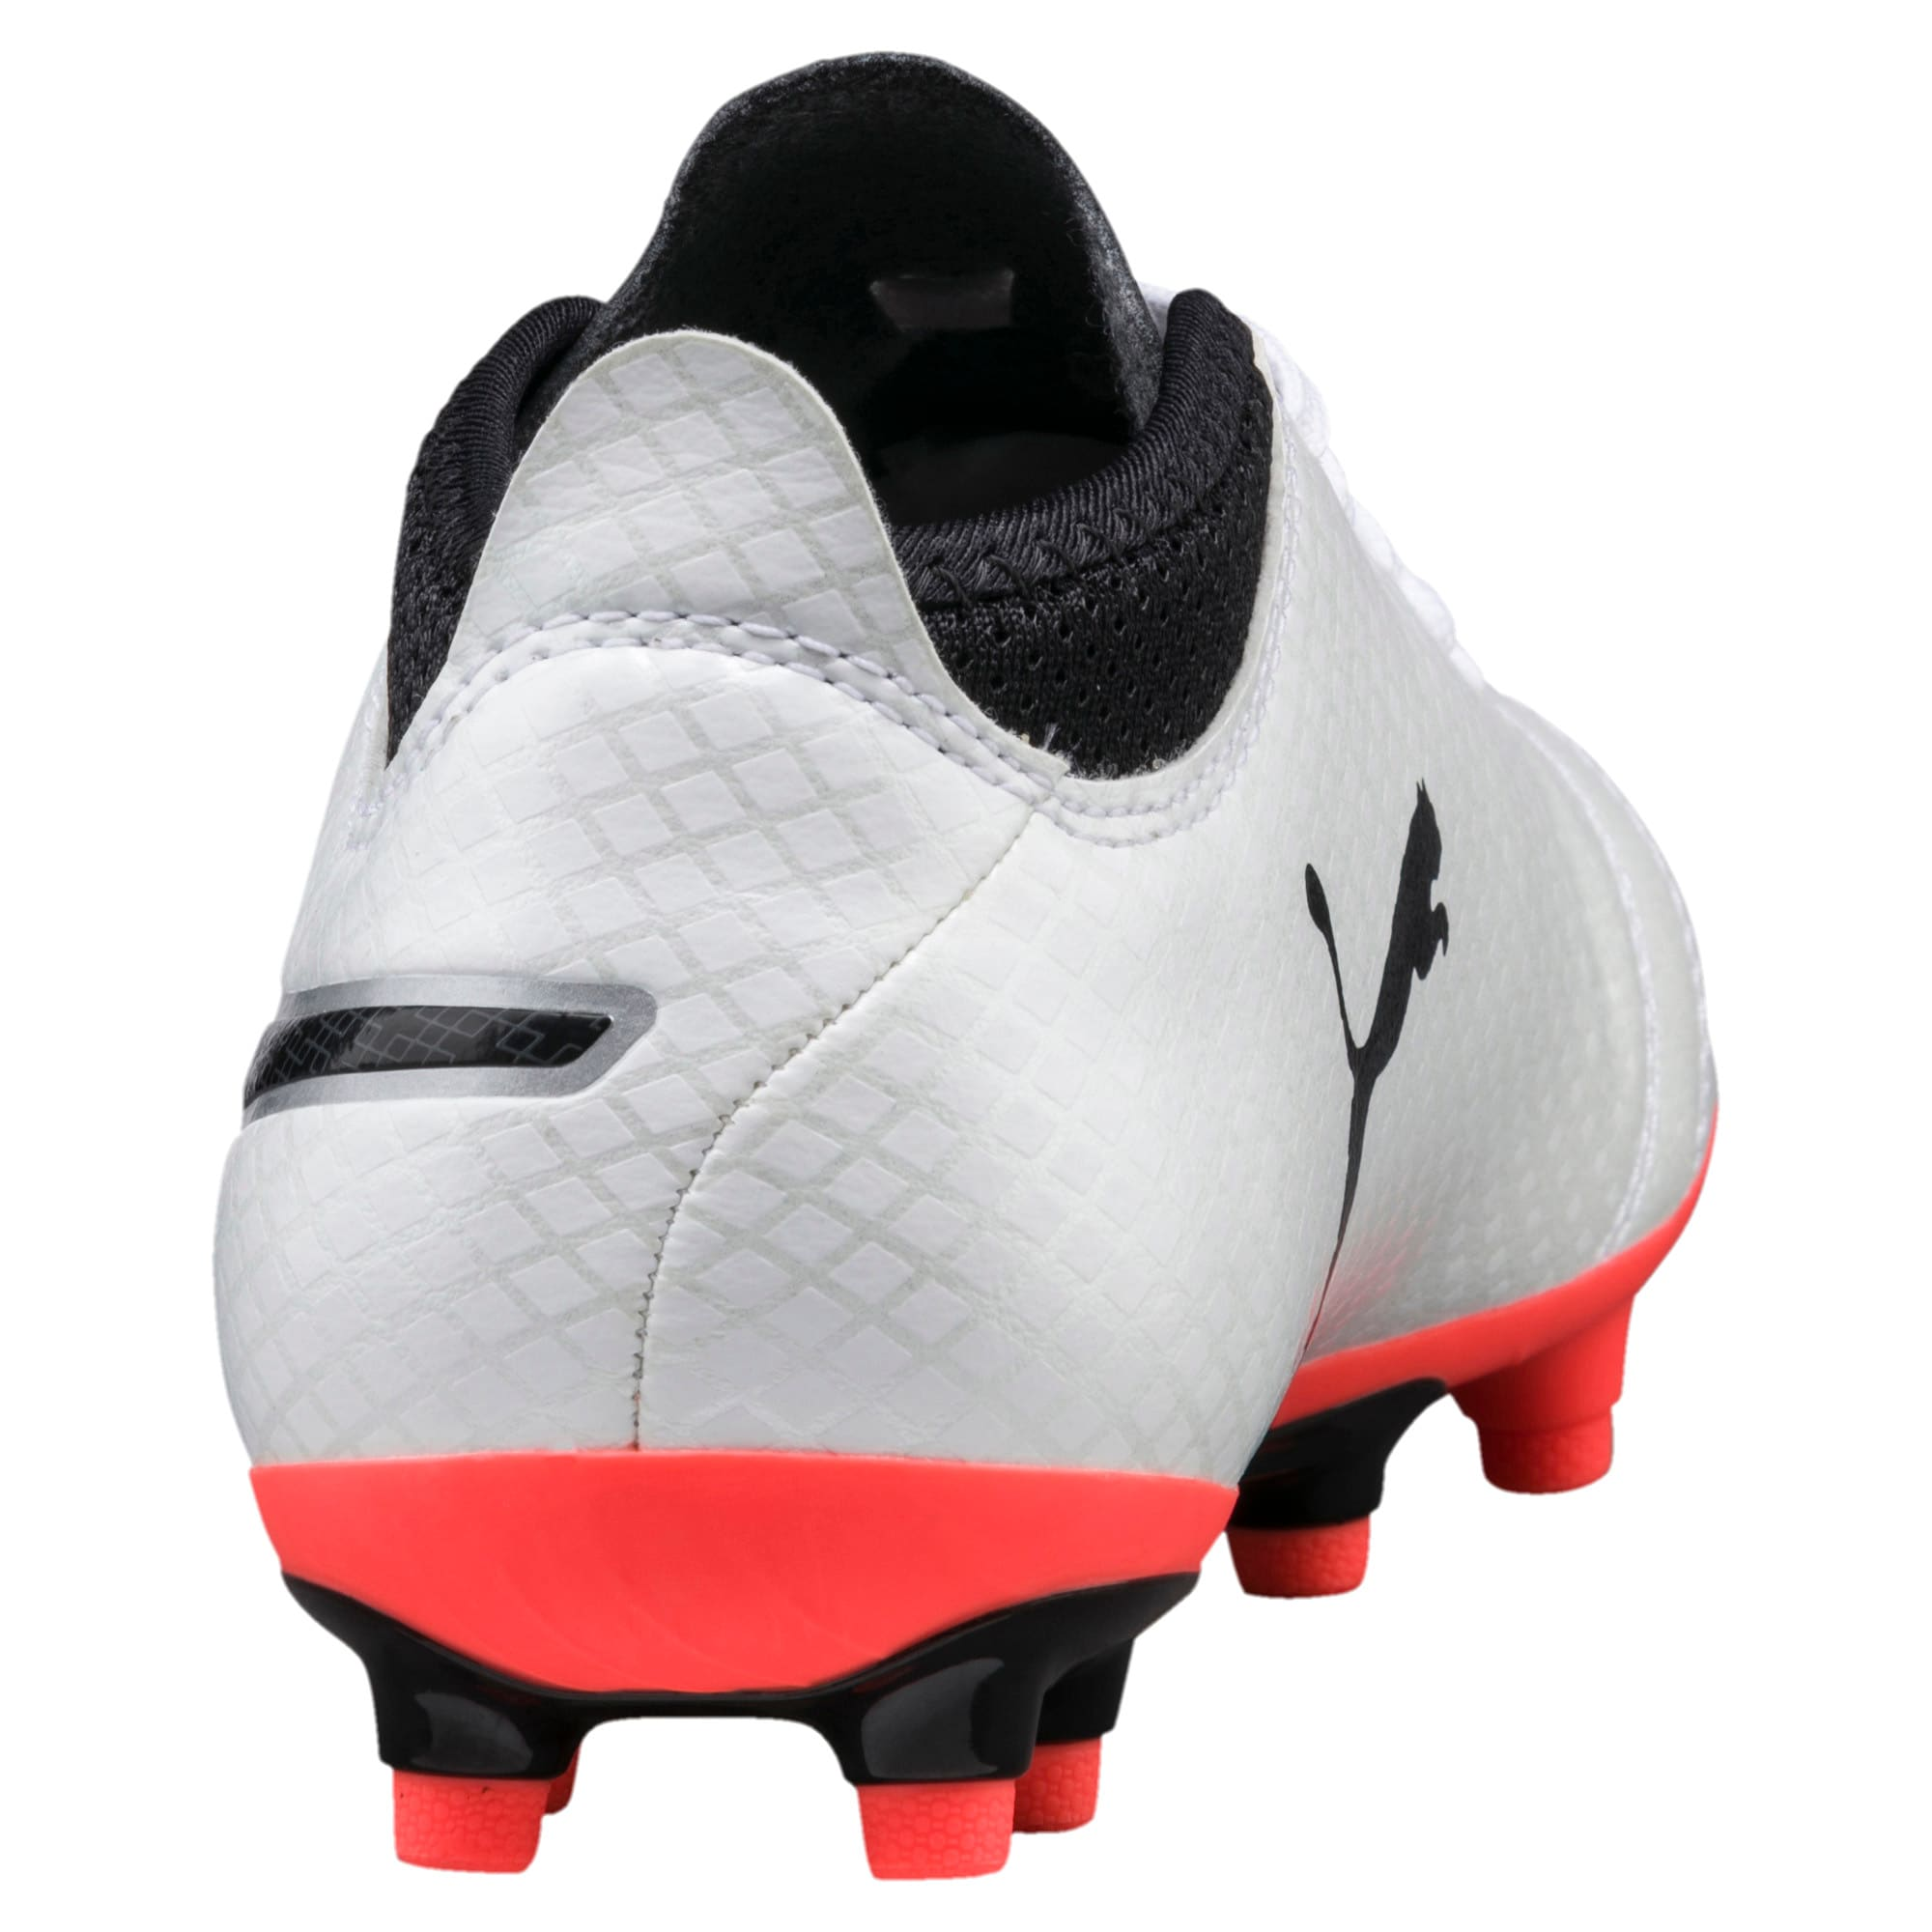 Thumbnail 3 of ONE 17.4 FG Kids' Football Boots, White-Black-Coral, medium-IND